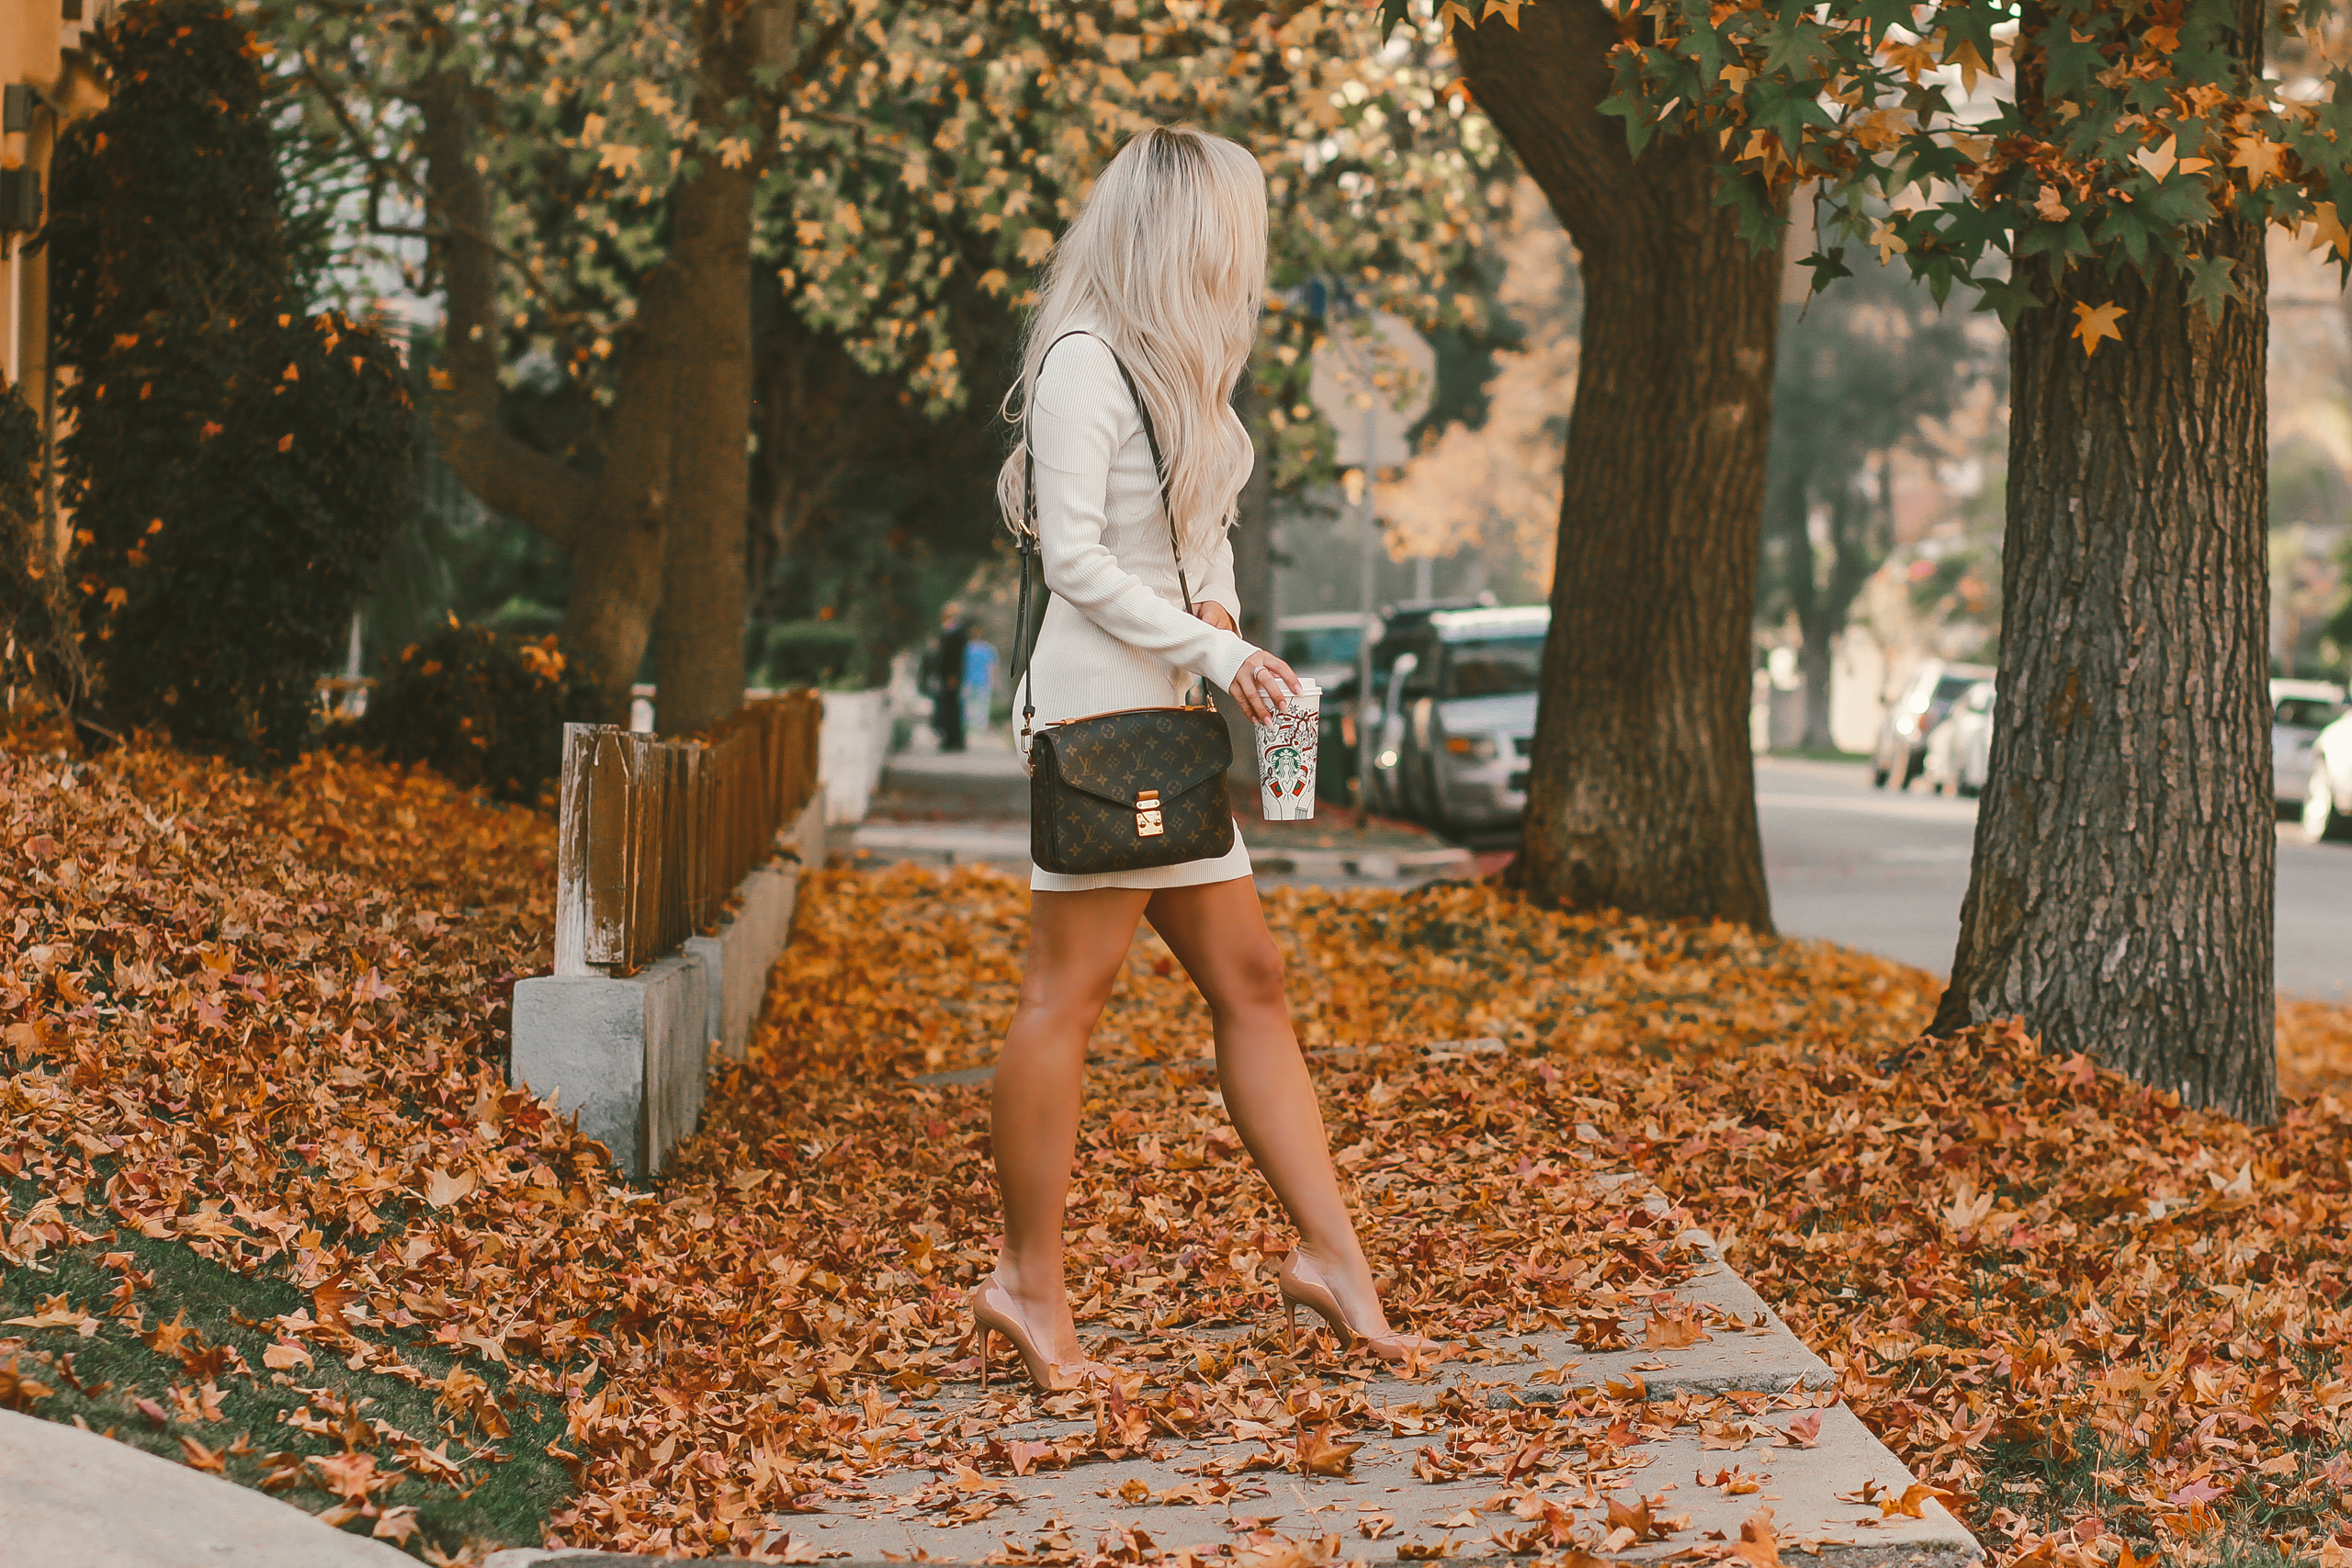 Blondie in the City | Cozy White Sweater Dress | Fall Fashion | Louis Vuitton | Fall Leaves | Louboutin's